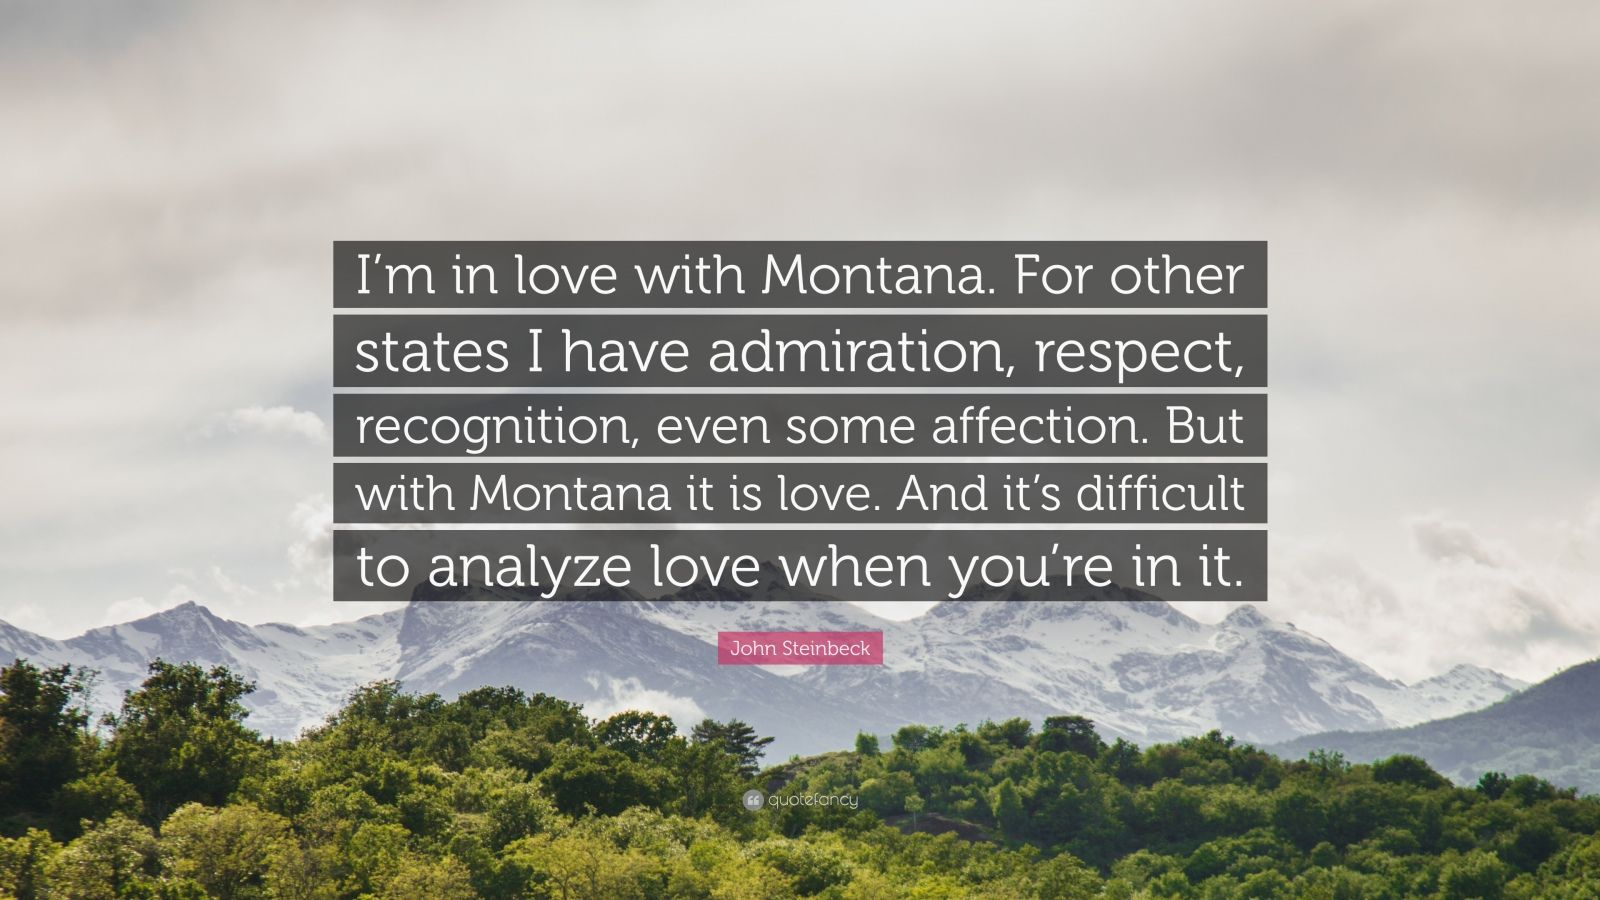 """John Steinbeck Quote: """"I'm in love with Montana. For other states I have admiration, respect, recognition, even some affection. But with Montana it is love. And it's difficult to analyze love when you're in it."""""""